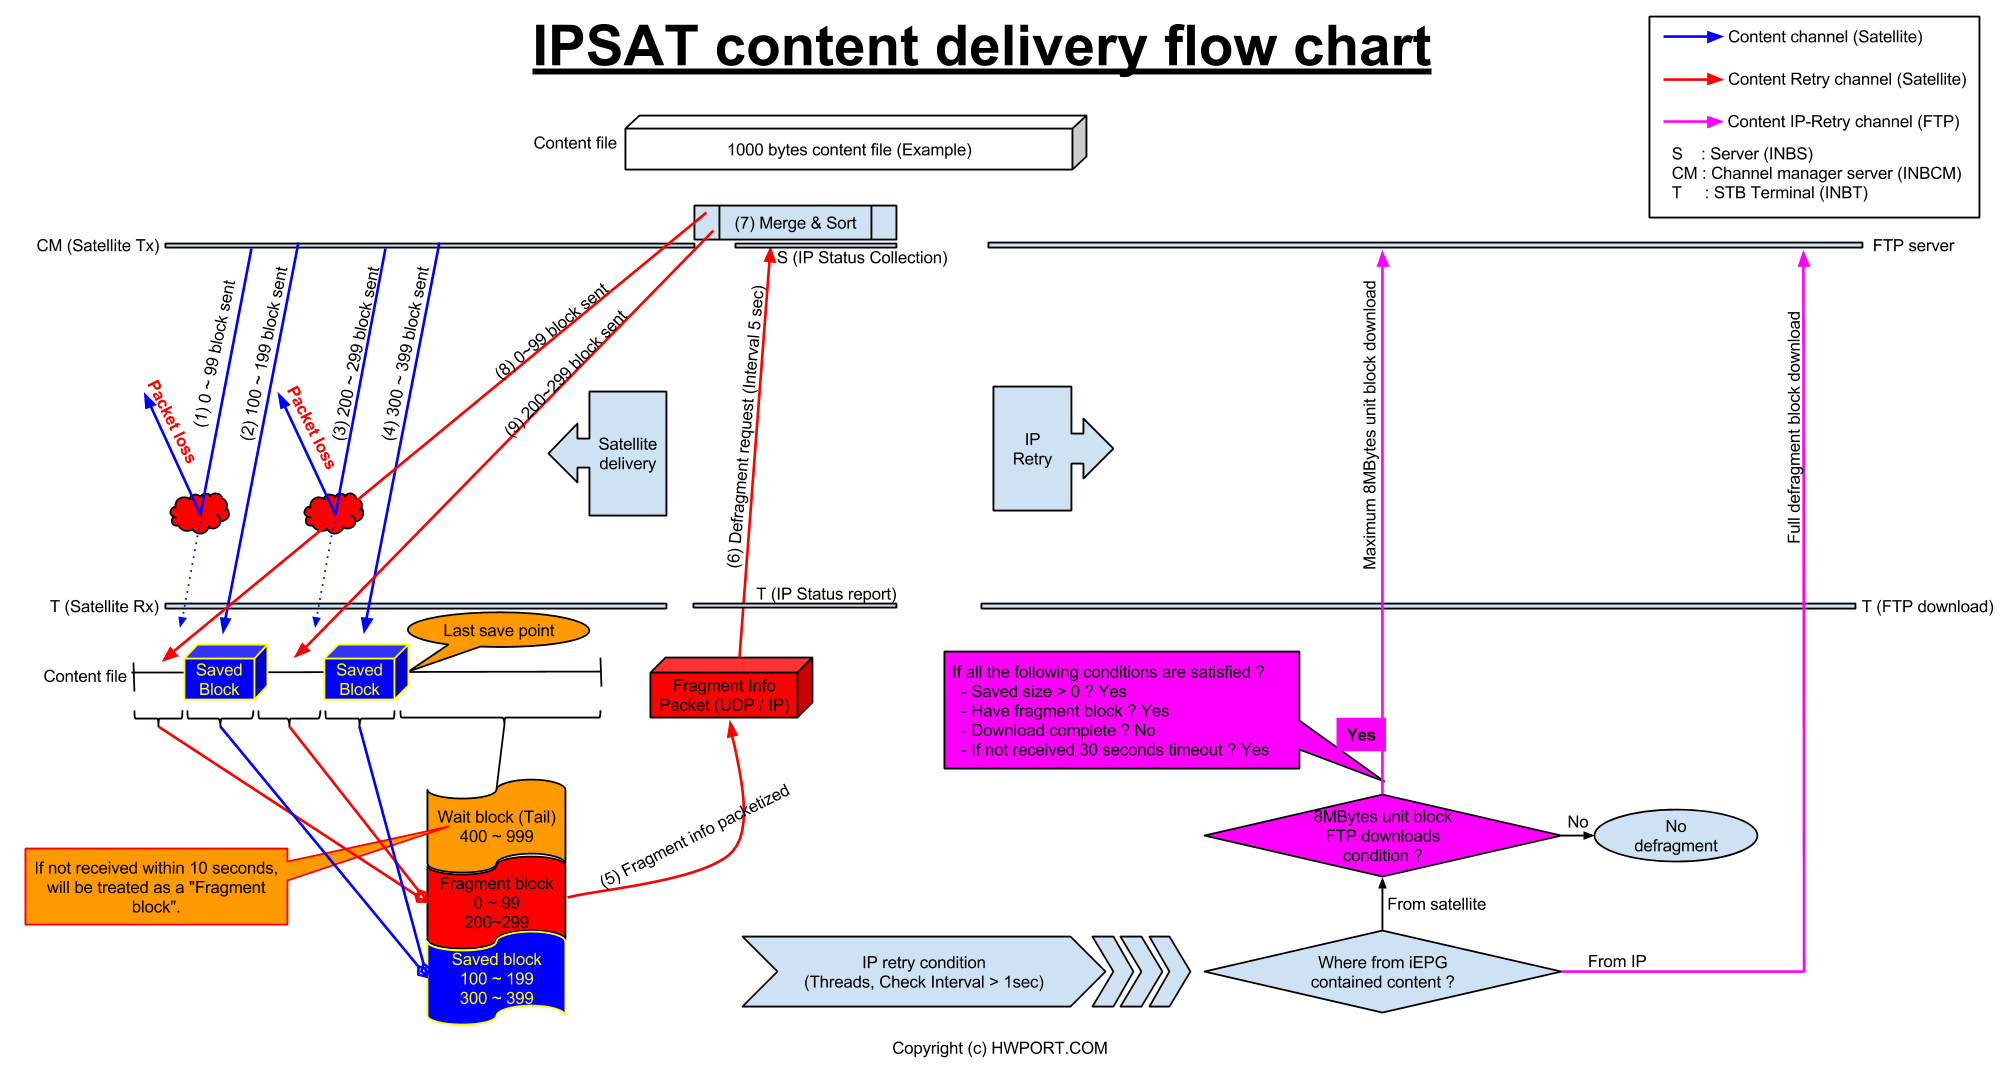 IPSAT_content_delivery_flow_chart.png